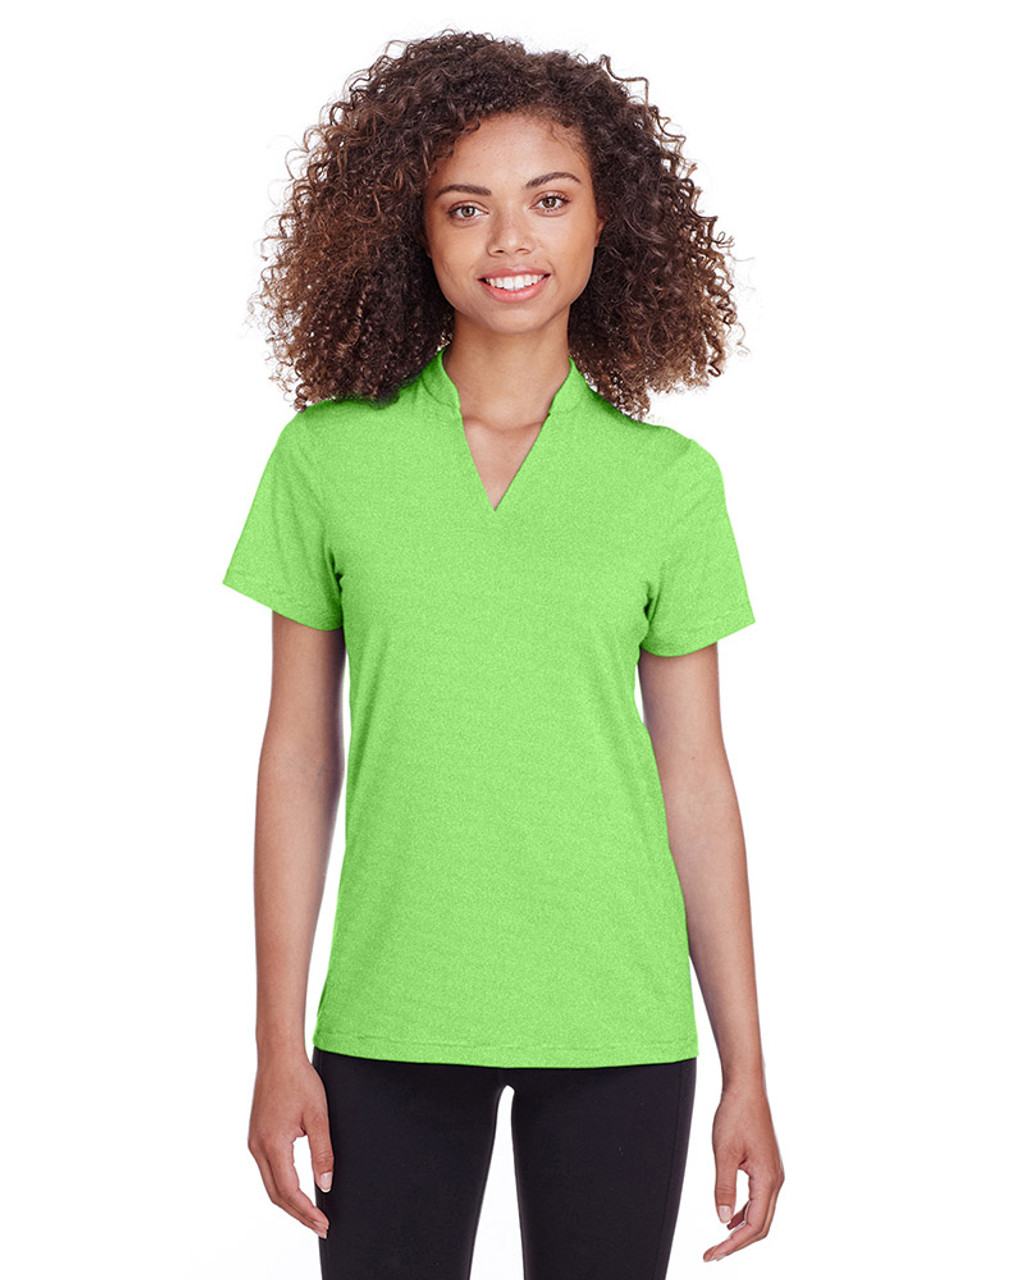 Lime Stripe - S16563 Spyder Ladies' Boundary Polo | Blankclothing.ca